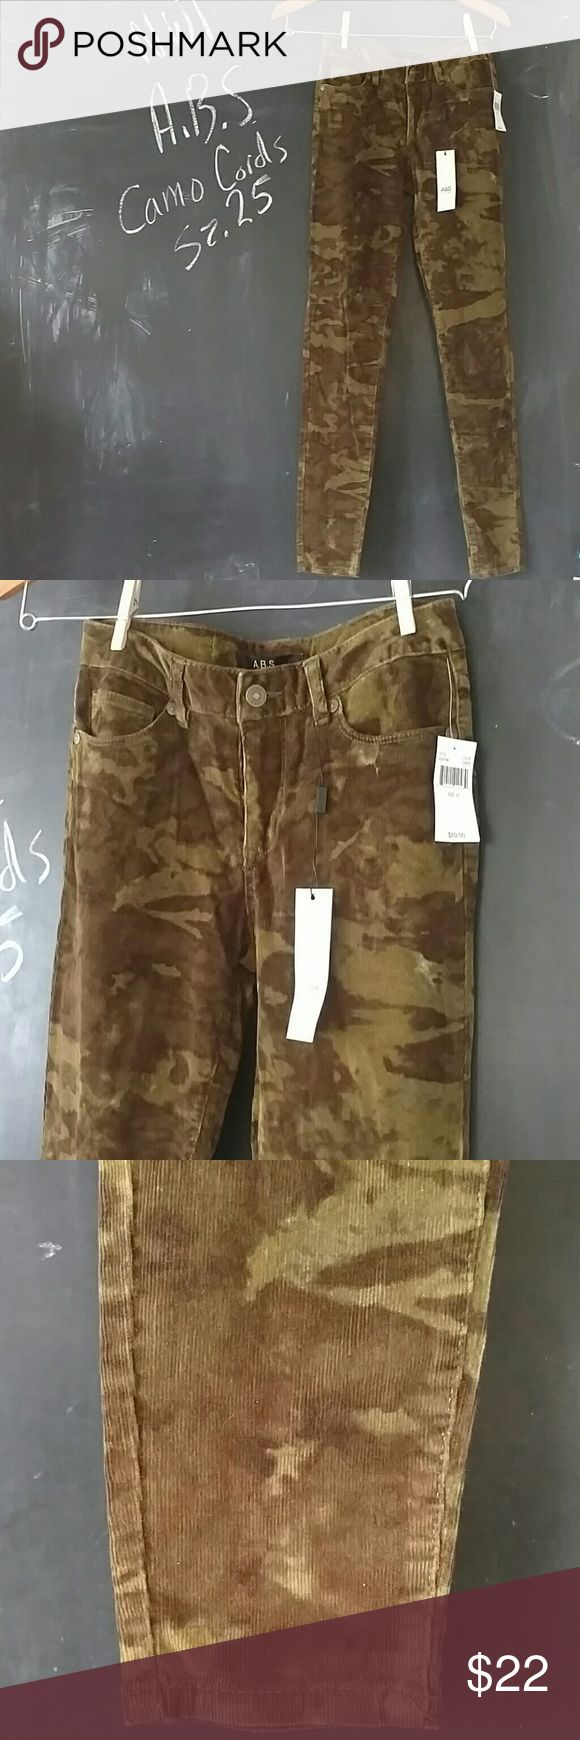 NWT ABS Corduroy Camo Pants Sz 25 Gorgeous soft cords ABS Allen Schwartz.  Green camo camouflage pattern skinny pants.  NWT Excellent condition.  Sz 25 Slight stretch to them.    Nice pants. ABS Allen Schwartz Pants Skinny